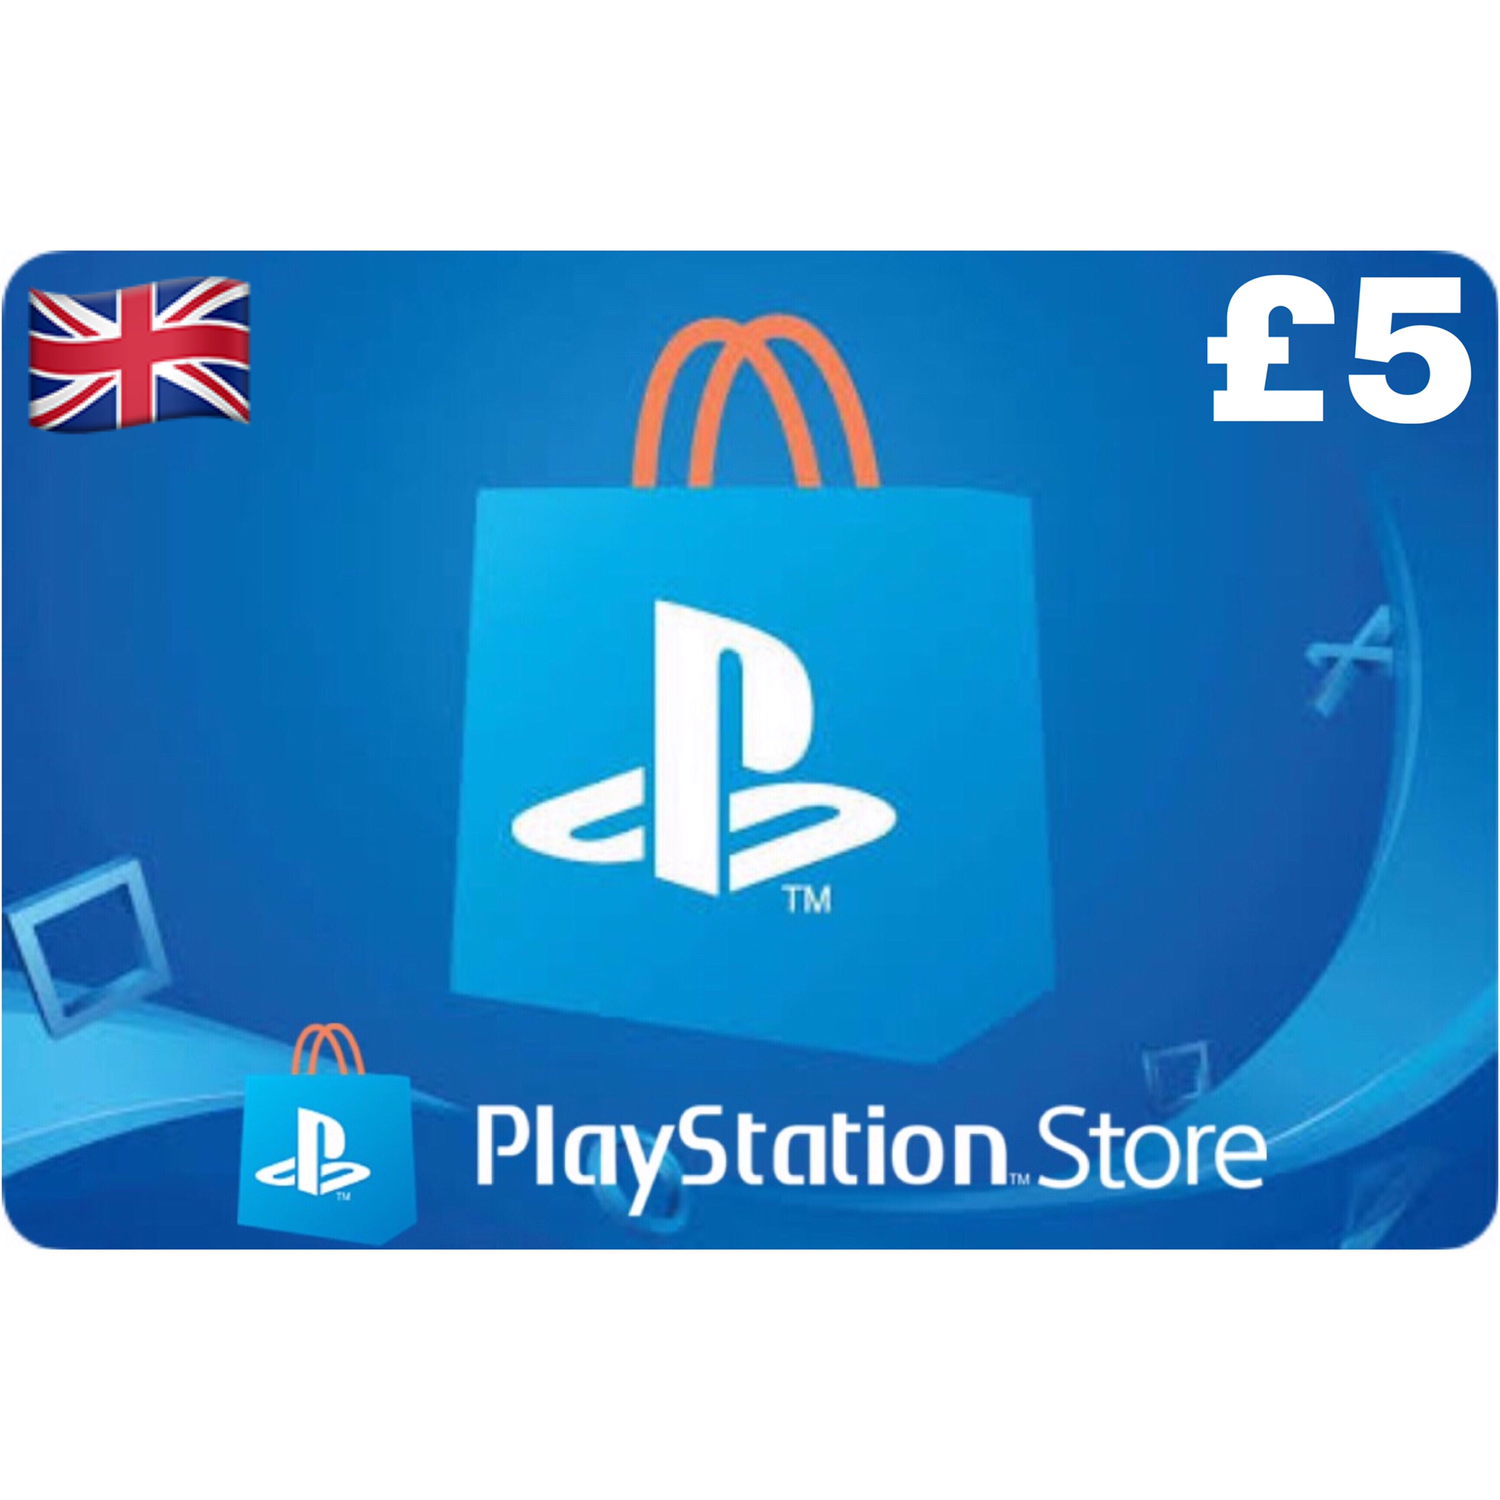 PSN Card - Playstation Network UK £5